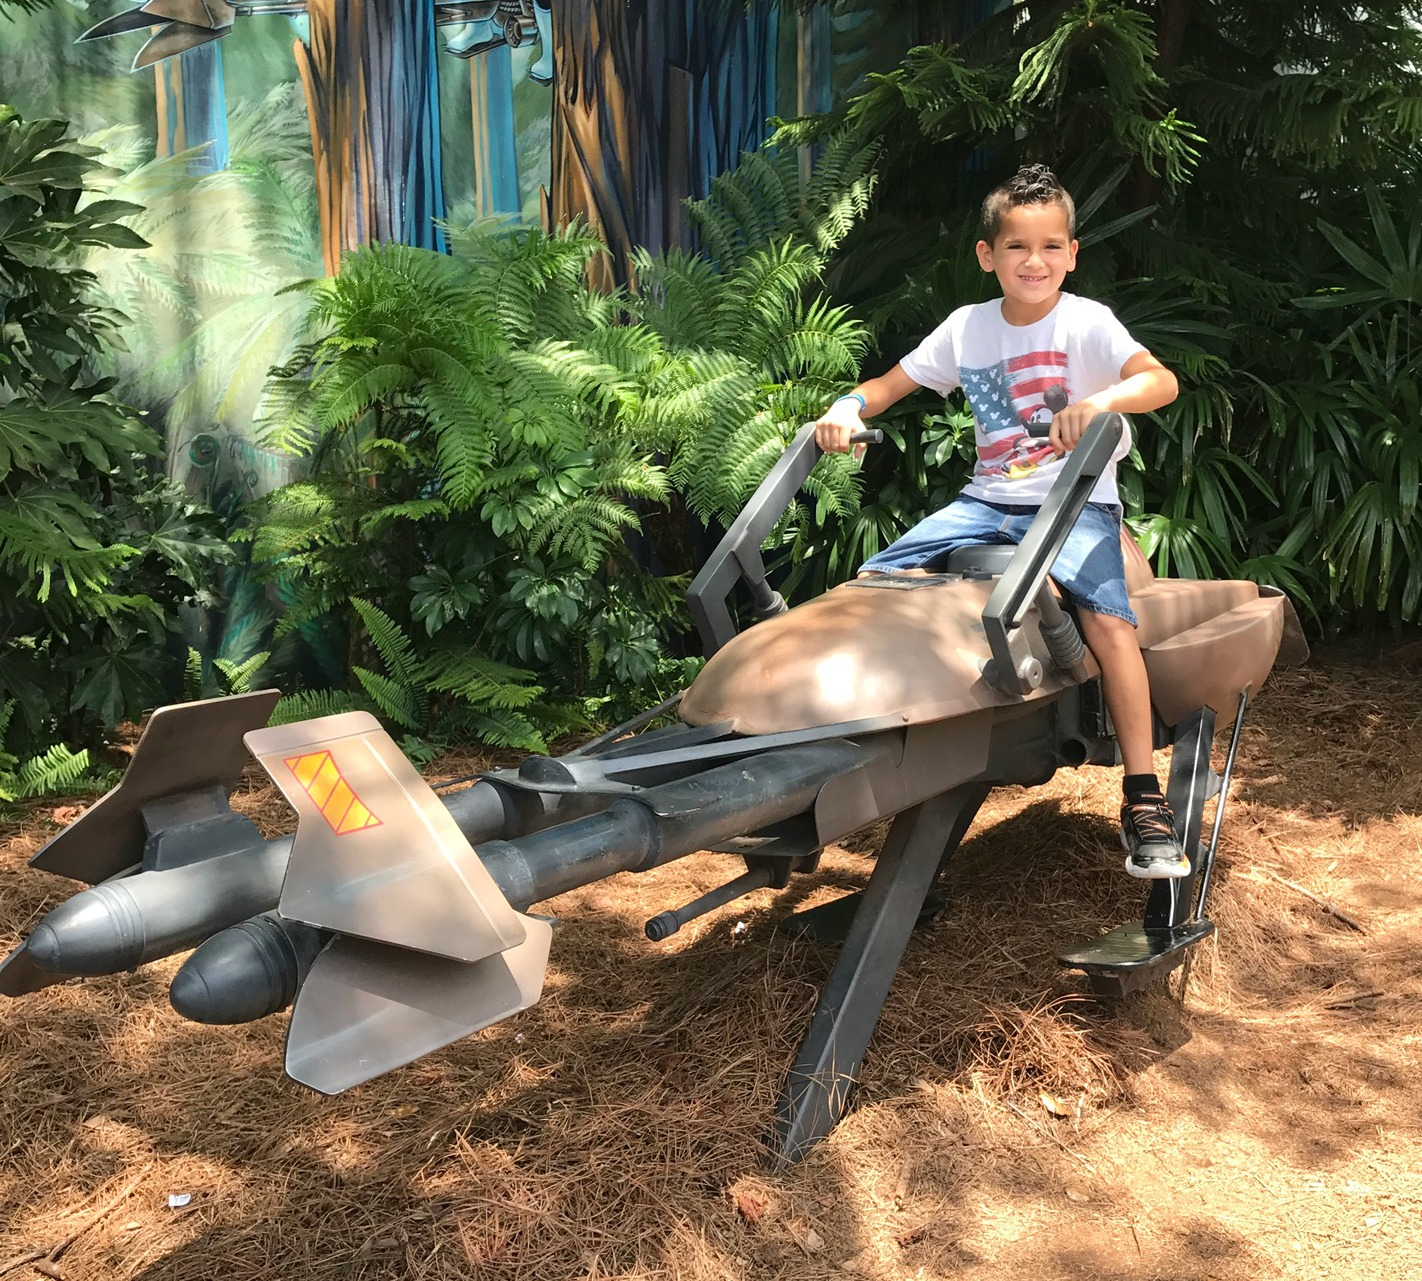 Star Wars at Disney World Hollywood Studios